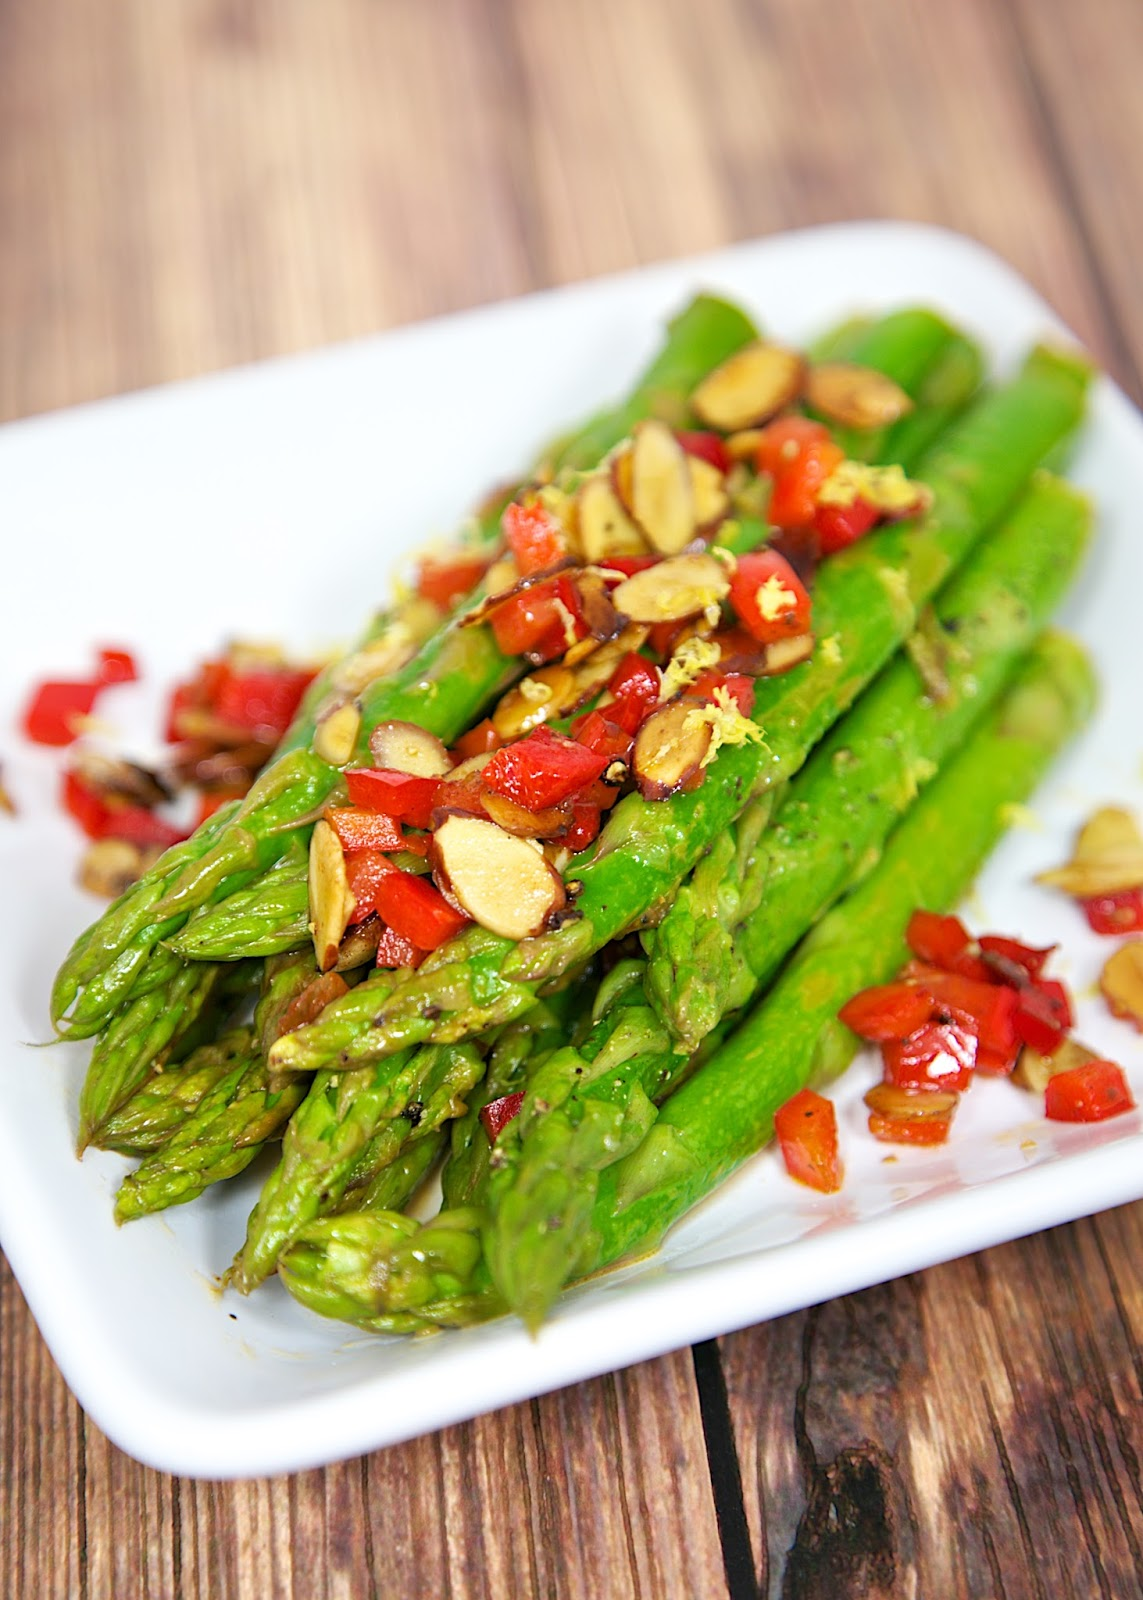 Asparagus Amandine - fresh asparagus, red bell pepper, almonds, butter and lemon juice. Ready in minutes!